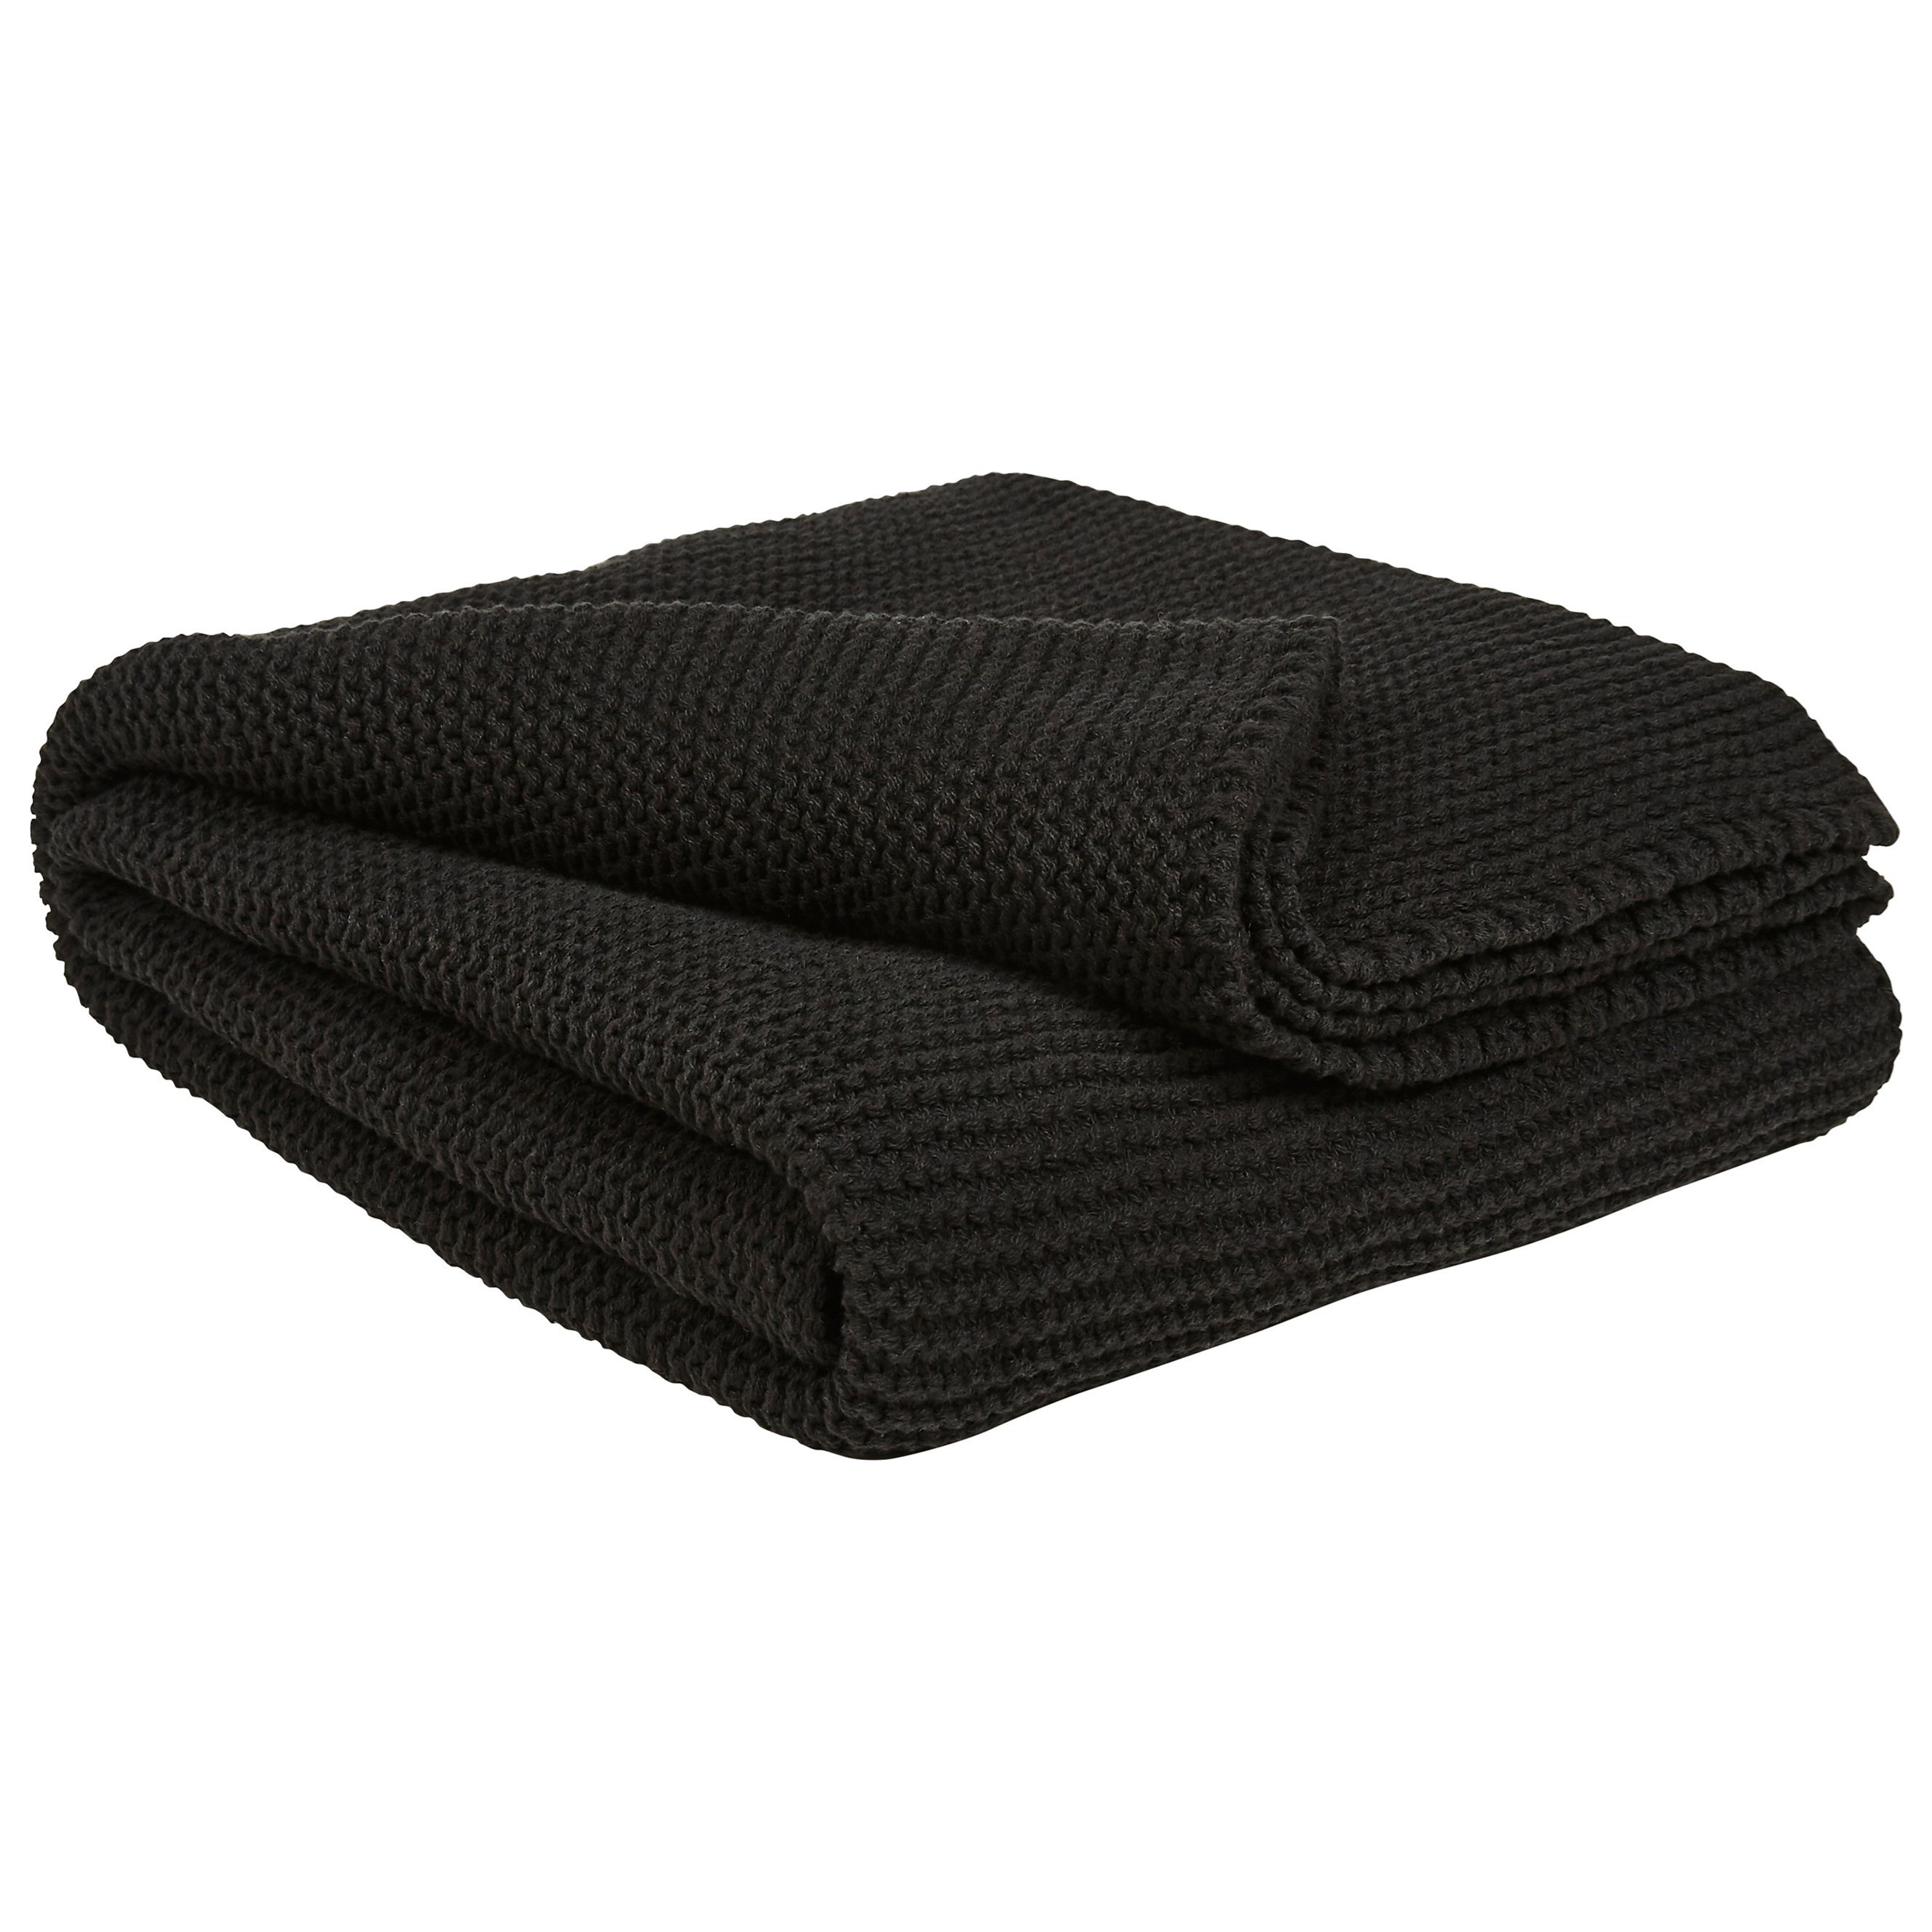 Throws Eleta Black Throw by Signature Design by Ashley at Northeast Factory Direct